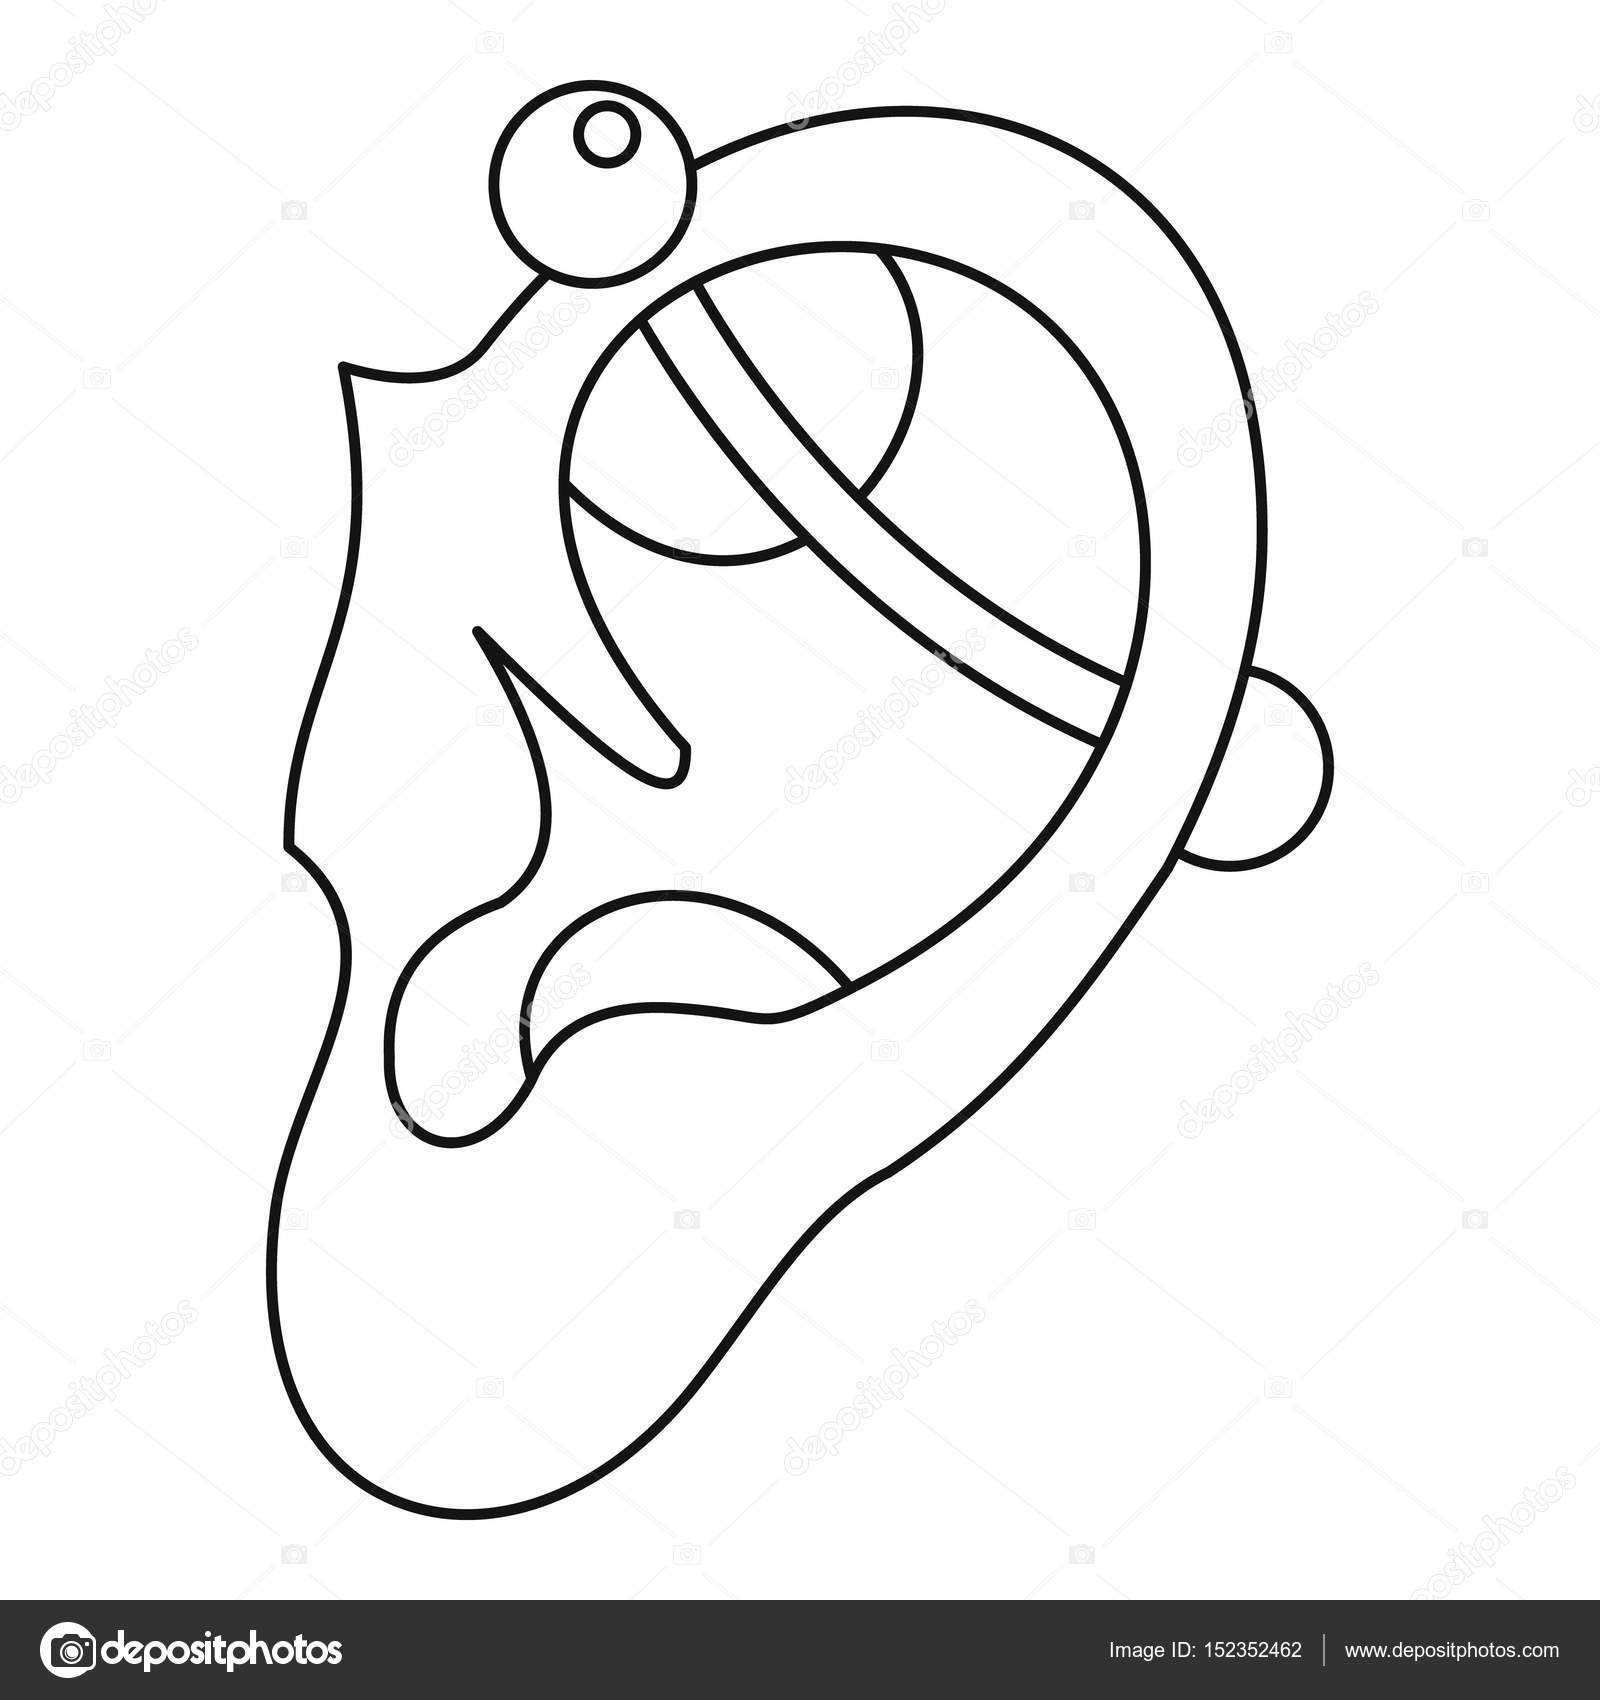 outline picture of ear free download rice ear icon png images ear vector icon ear outline picture of